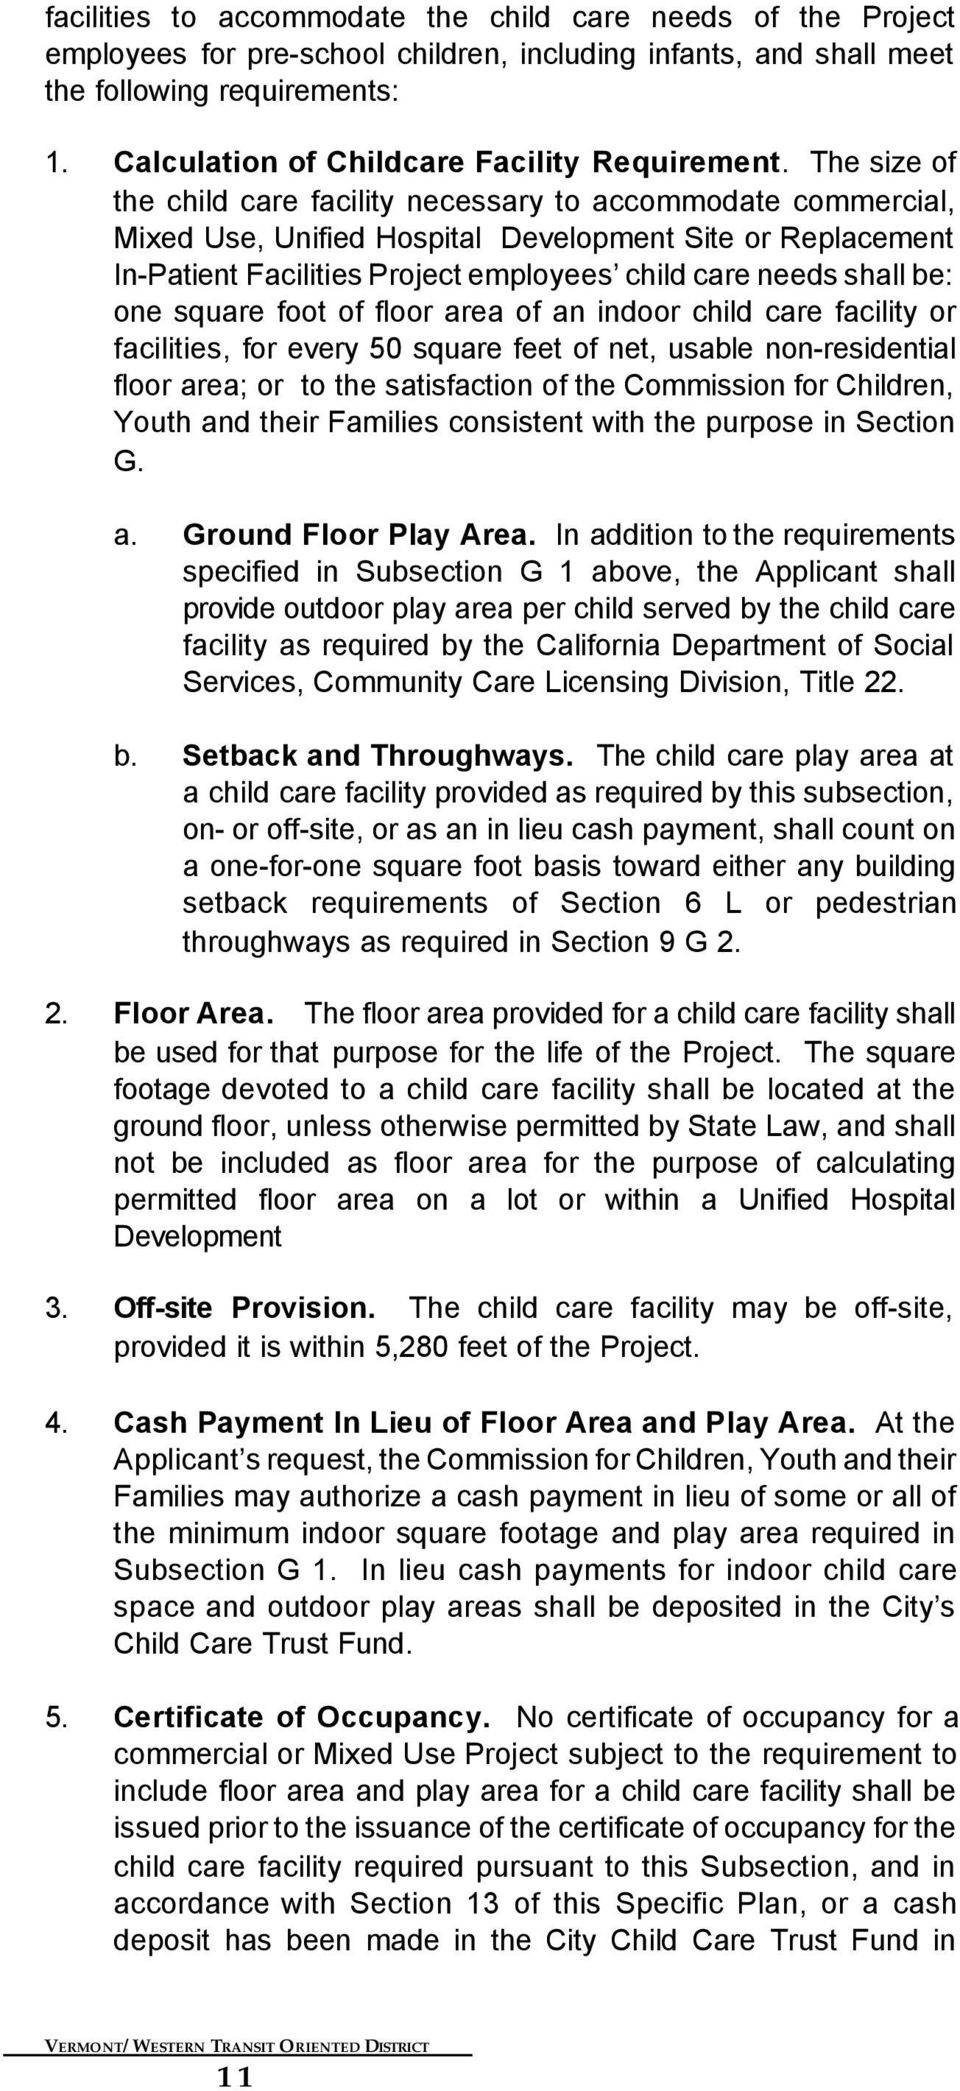 The size of the child care facility necessary to accommodate commercial, Mixed Use, Unified Hospital Development Site or Replacement In-Patient Facilities Project employees child care needs shall be: